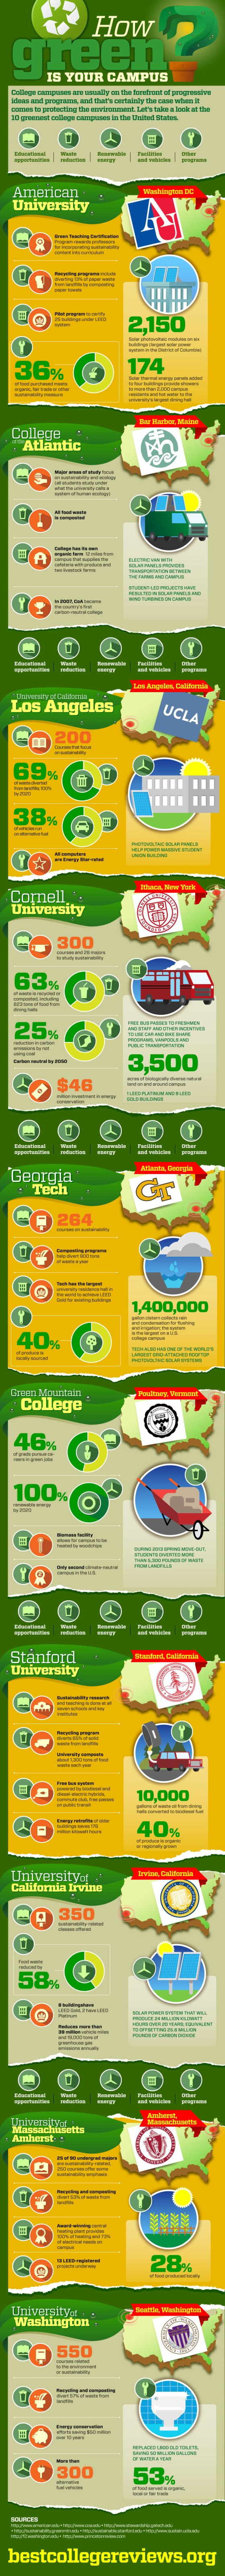 How Green is Your Campus?